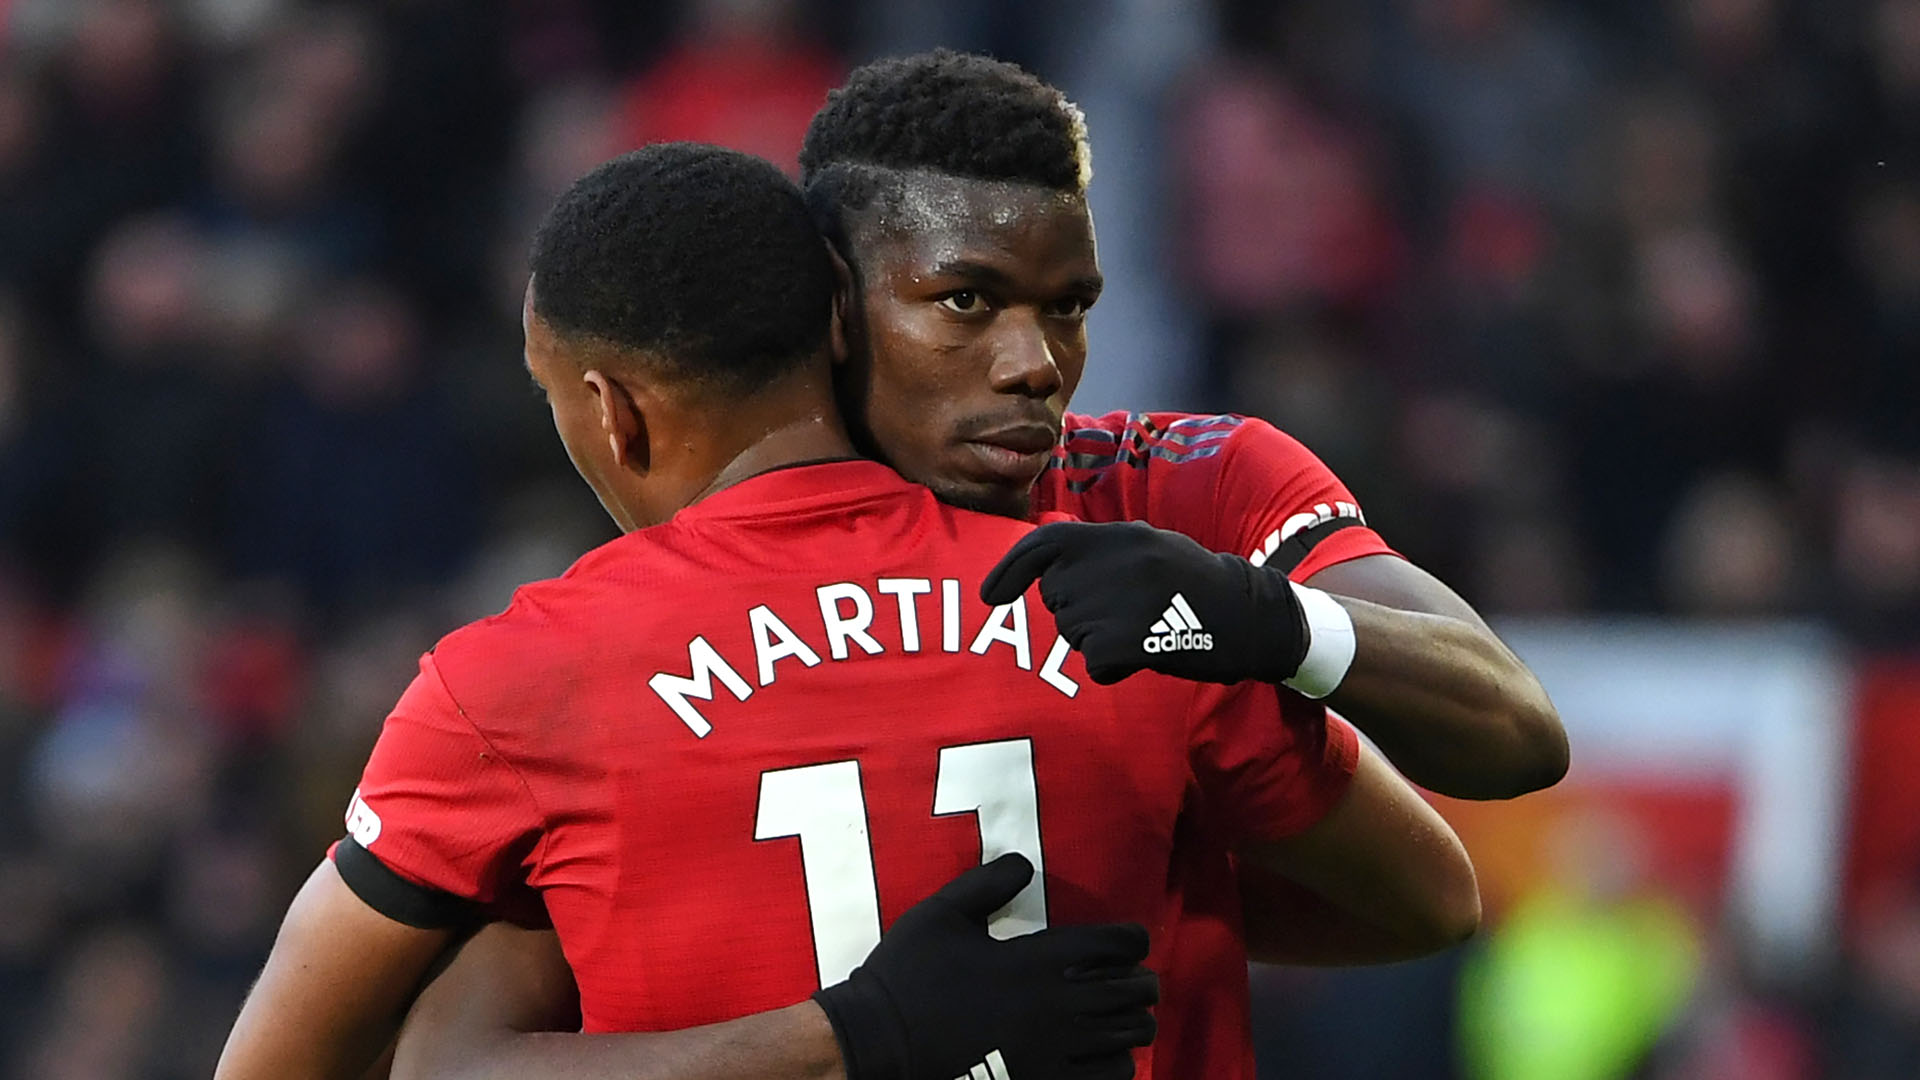 Manchester United - Pogba et Martial forfaits pour affronter Leicester